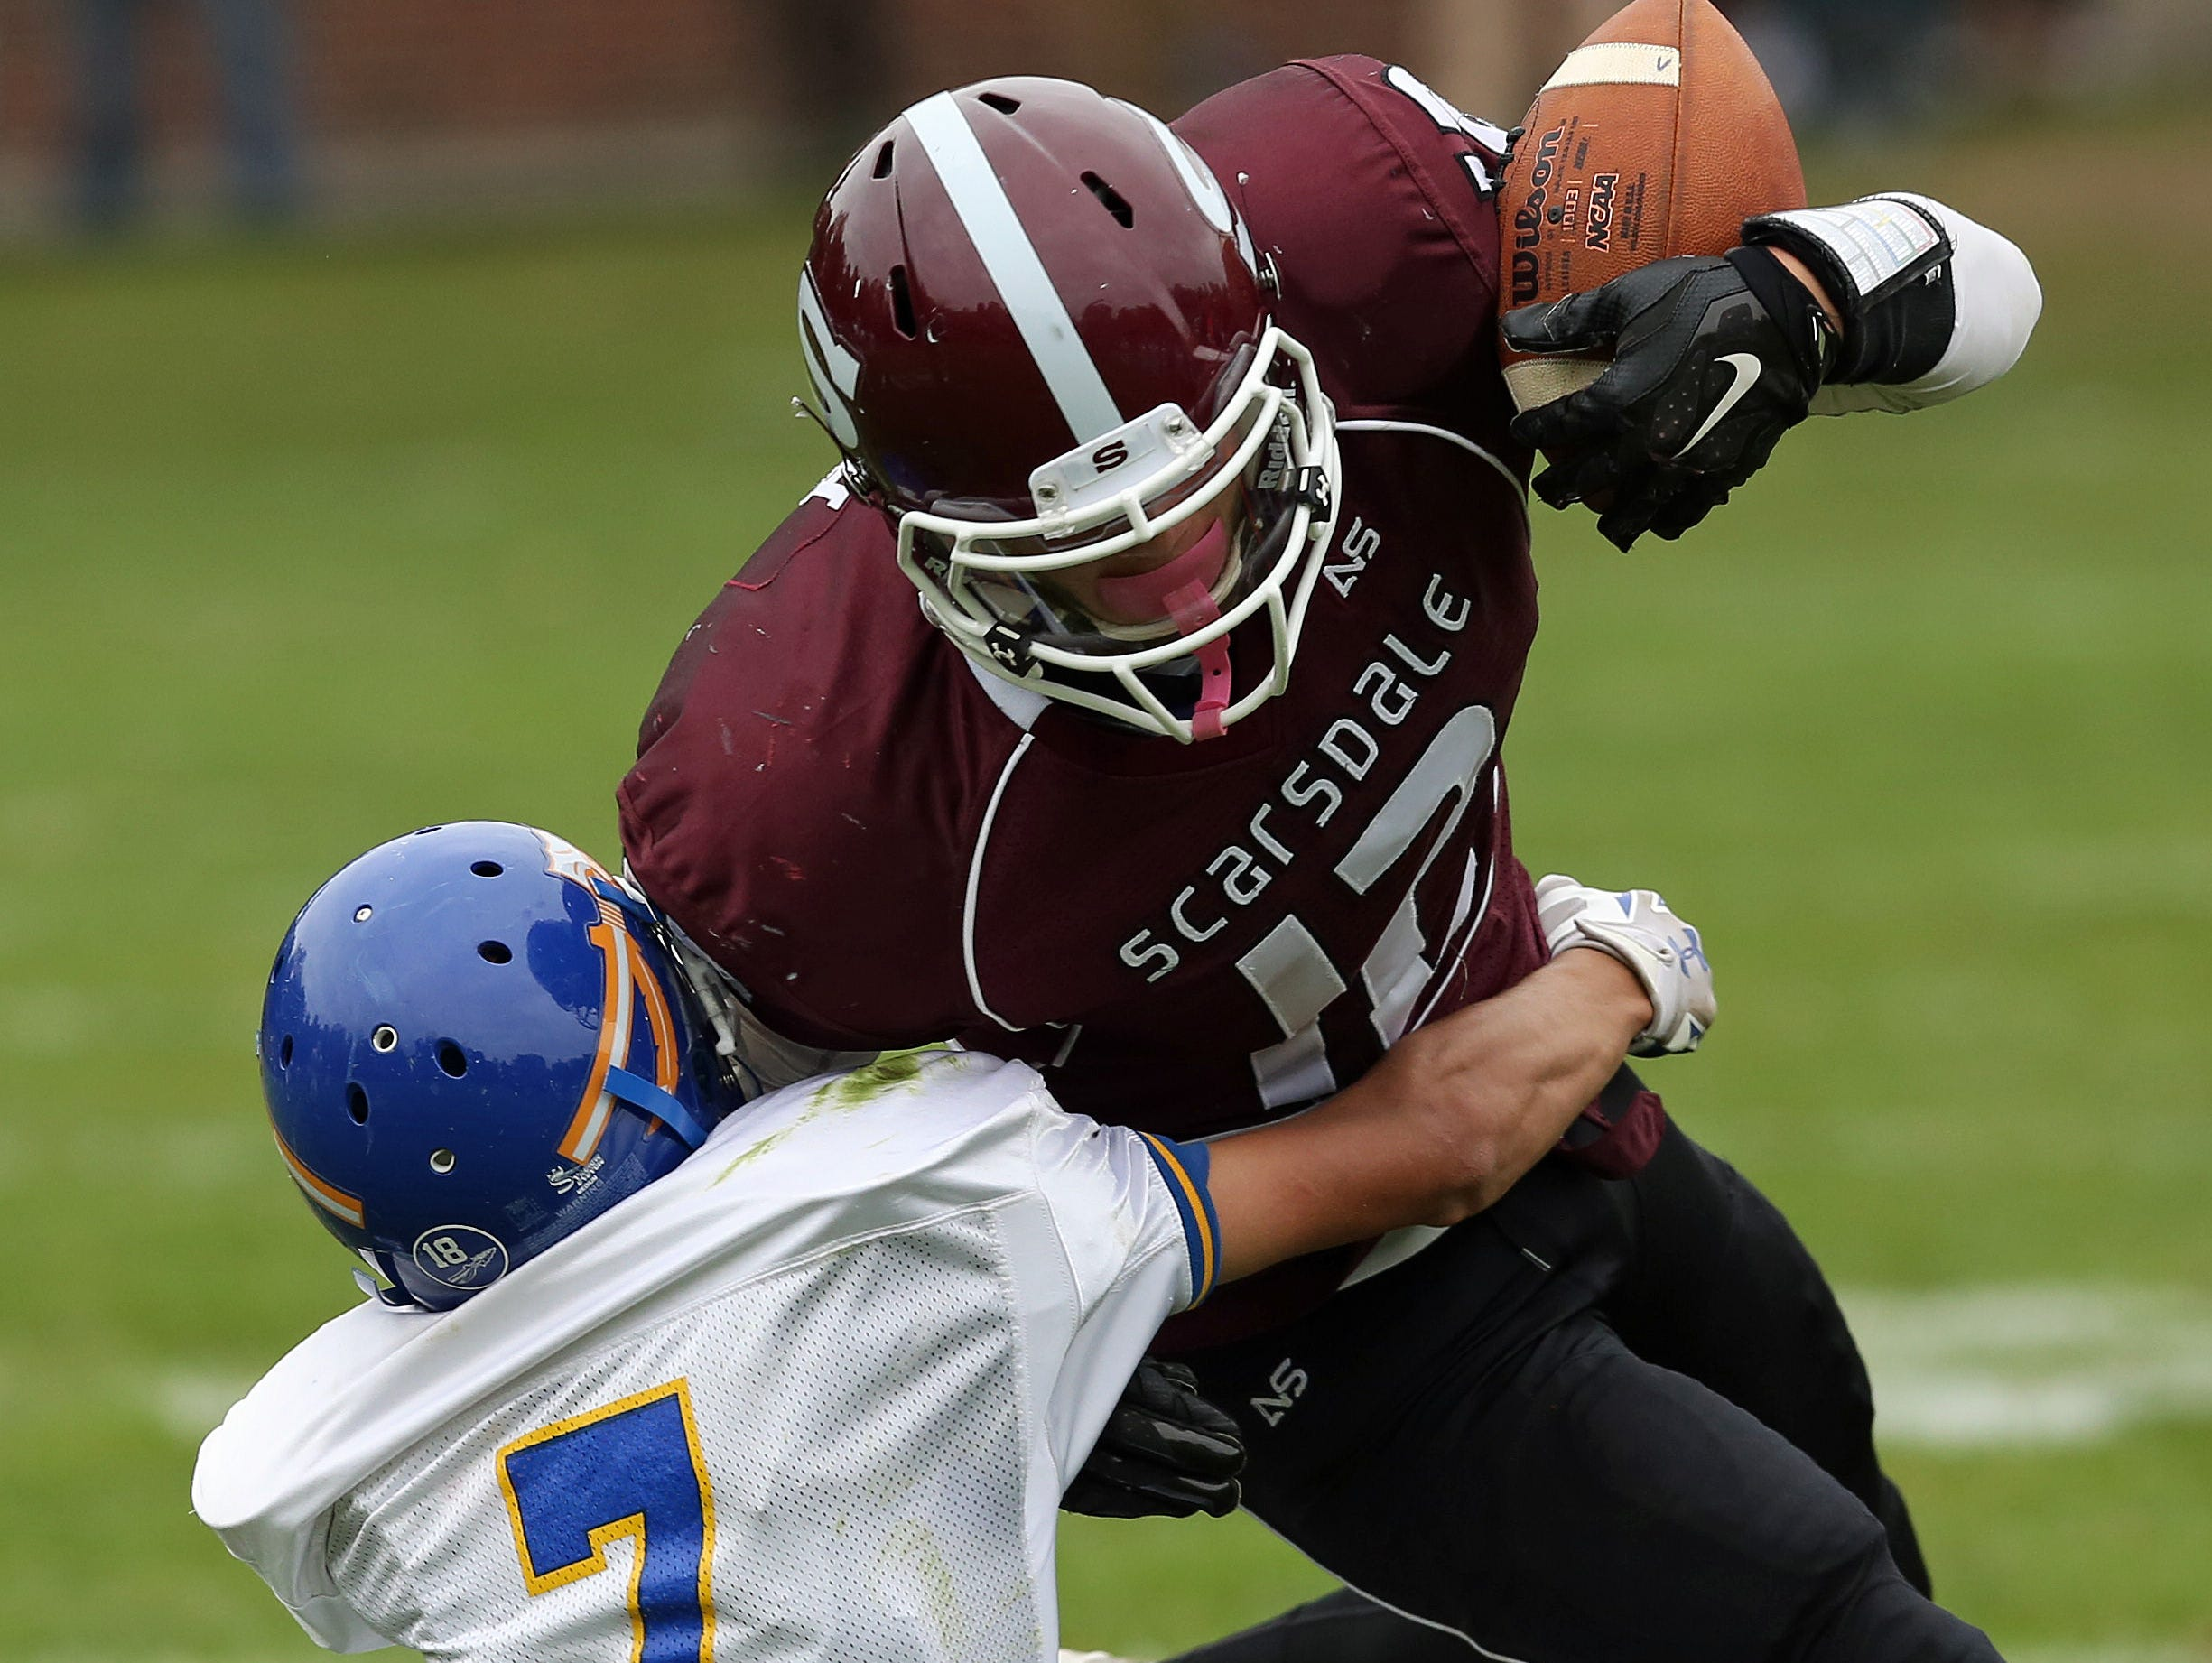 Scarsdale's Robbie Keith (12) tries to get around Mahopac's Andrew Winogradoff (7) on a second half run during football playoff game at Scarsdale High School Oct. 24, 2015. Scarsdale won the game 33-28.